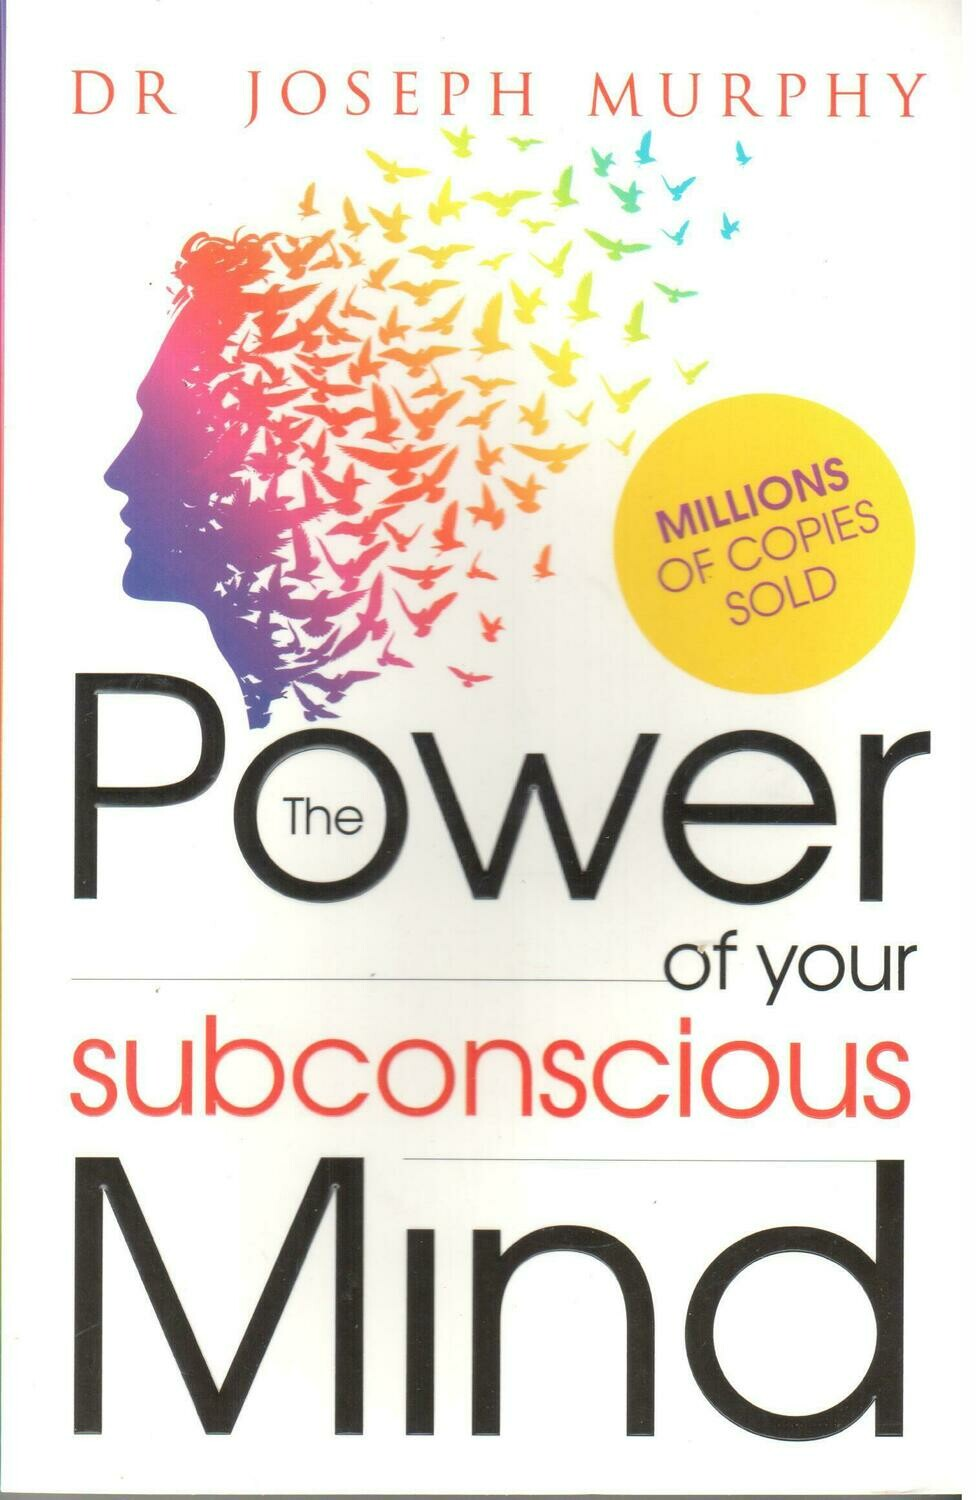 The Power of Your Subconscious Mind by Dr. Joseph Murphy